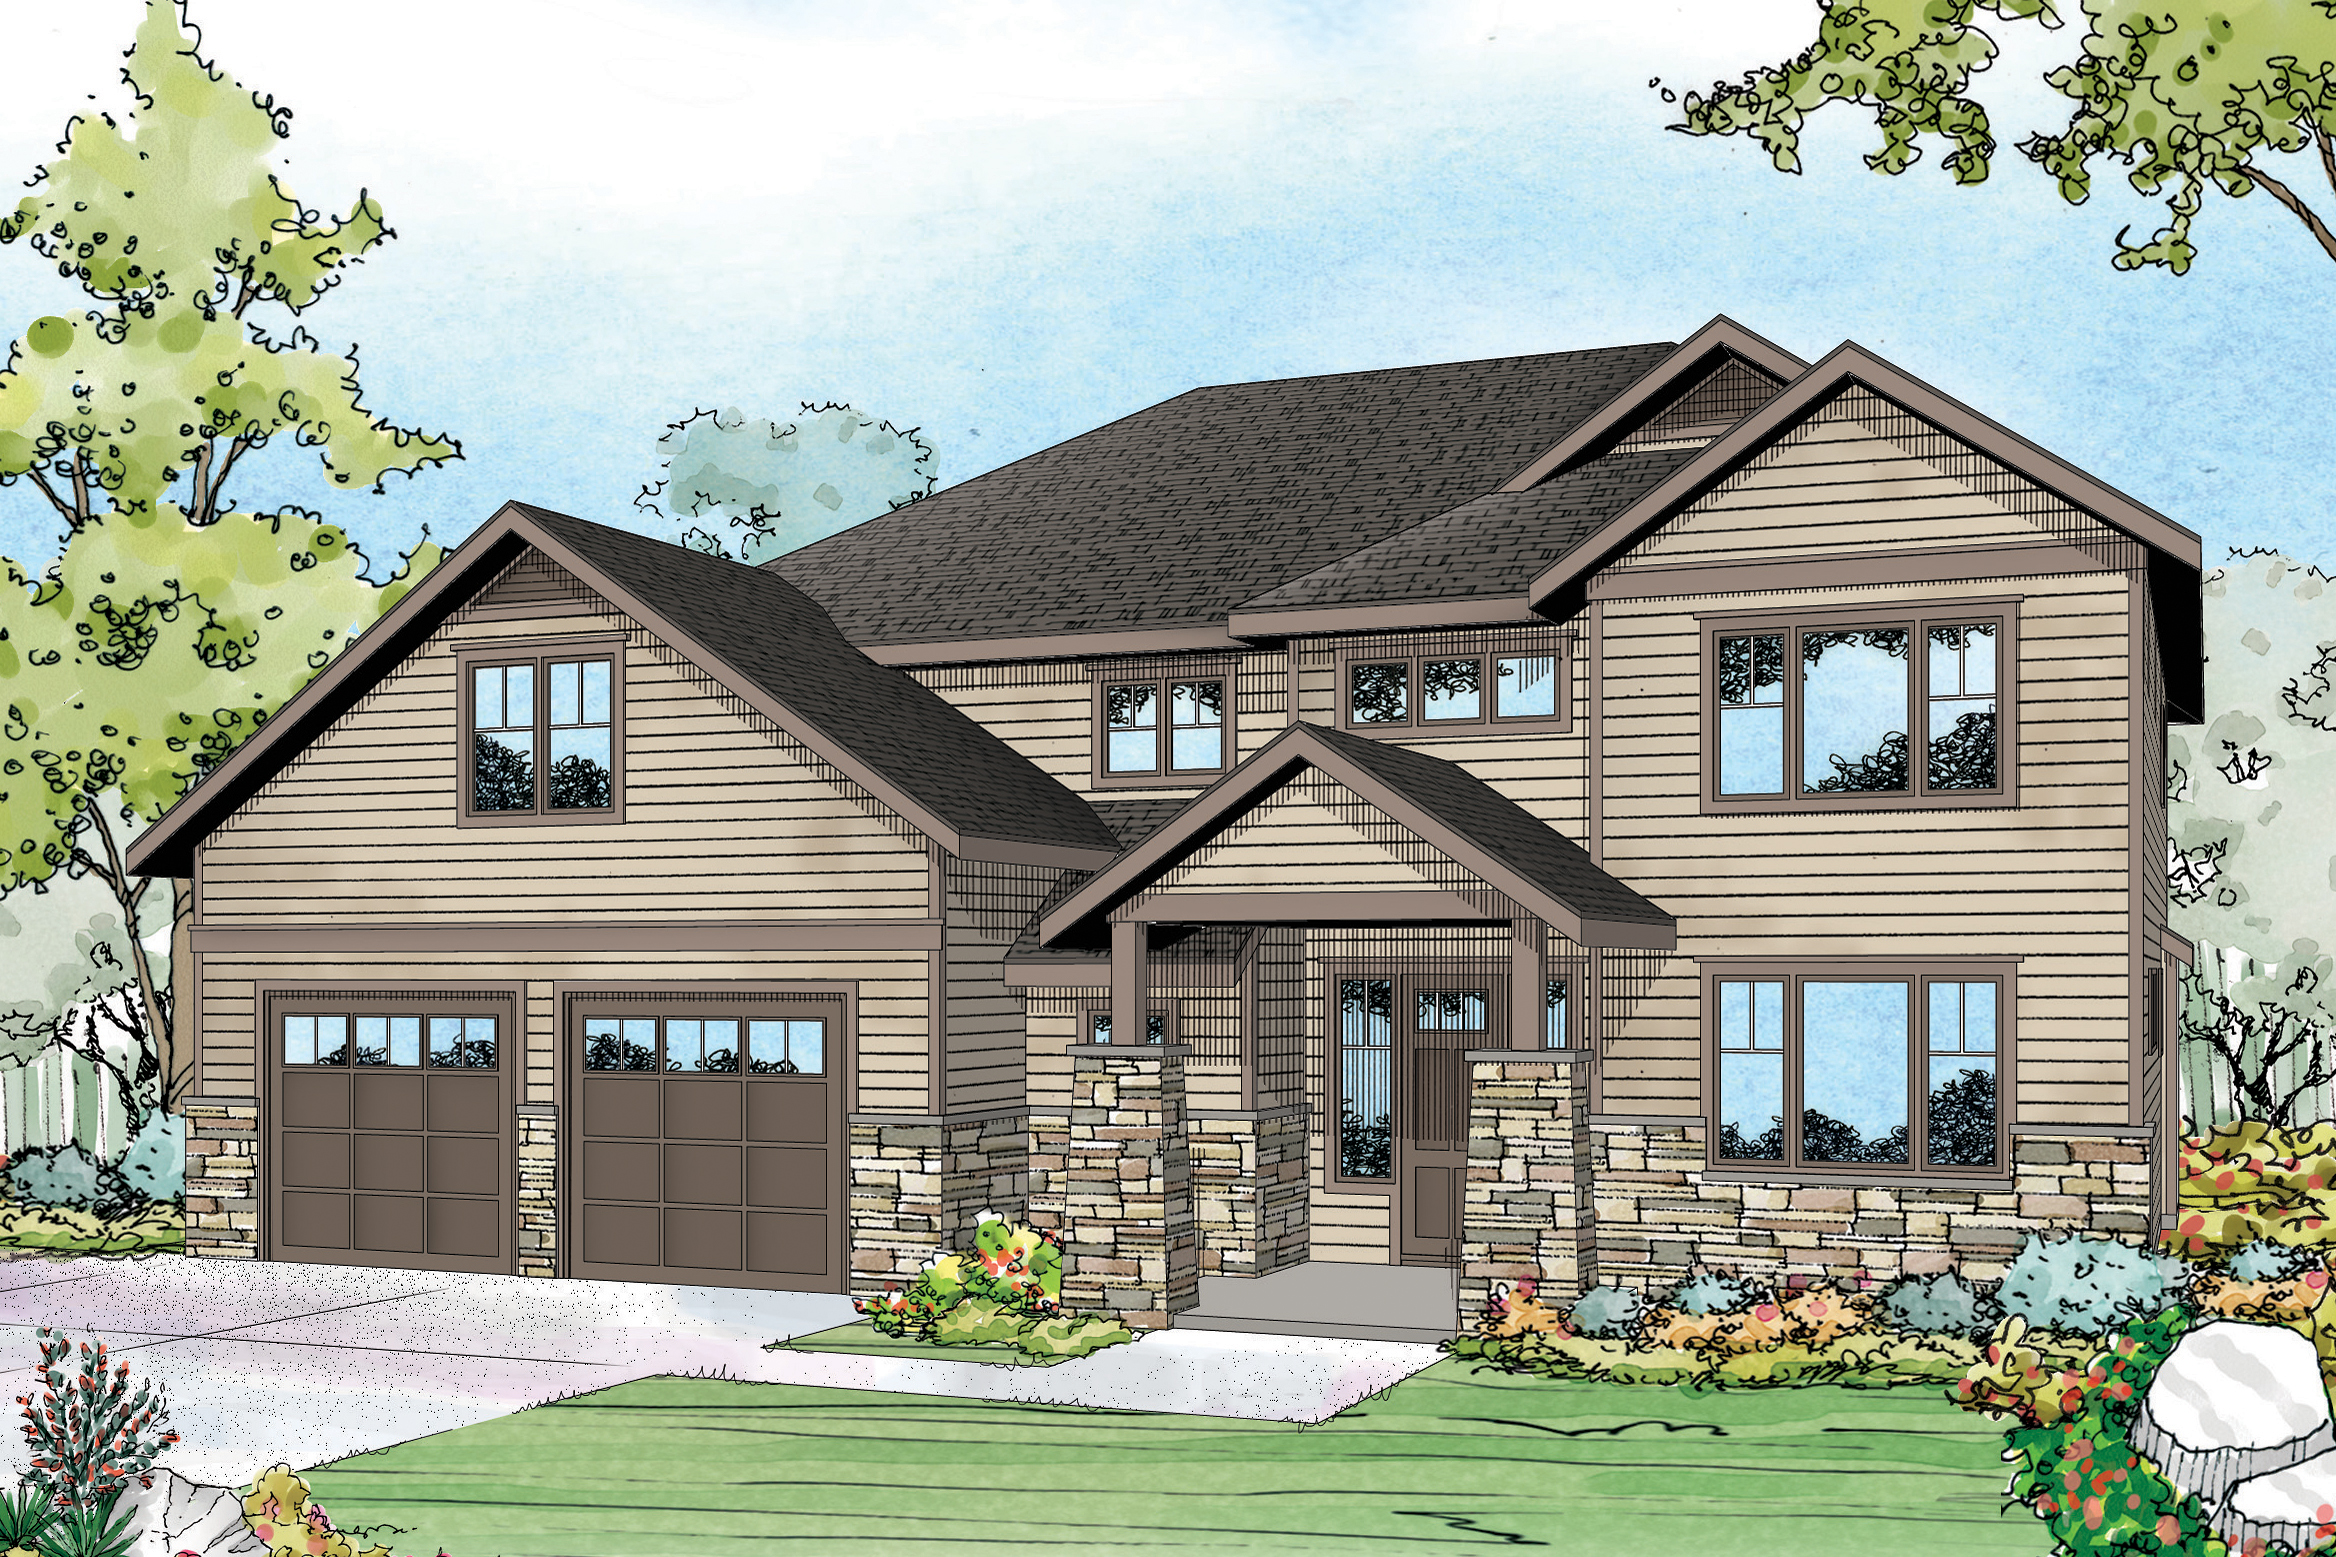 Craftsman House Plan, Country House Plan, Home Plan, Forest Grove 30-954